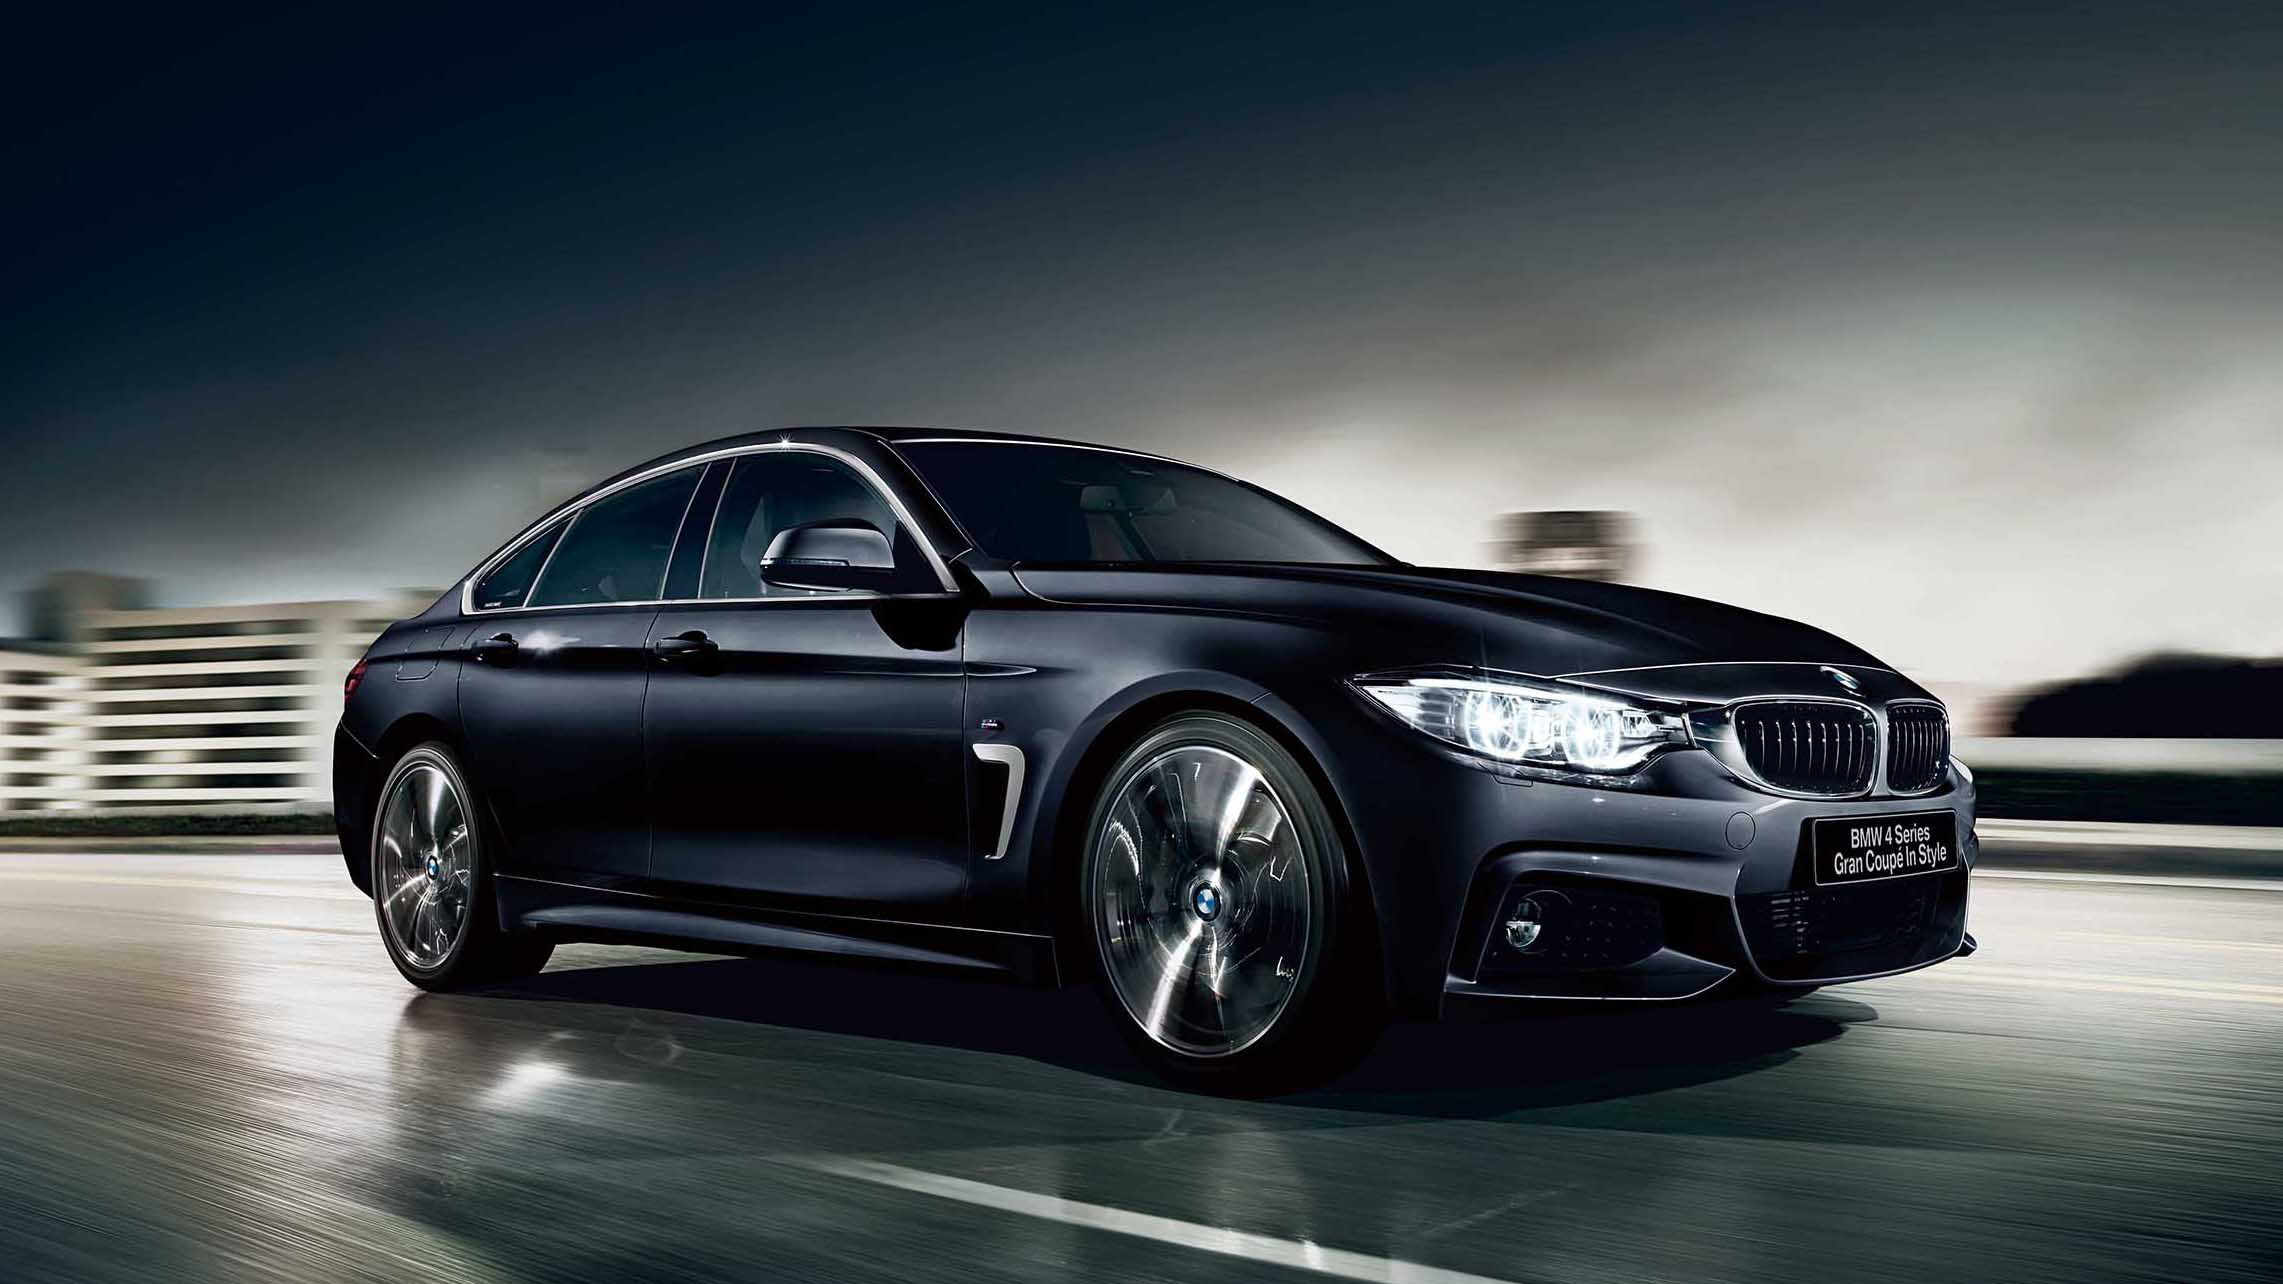 Bicycle_03 - 1024_bmw420i-instyle_01